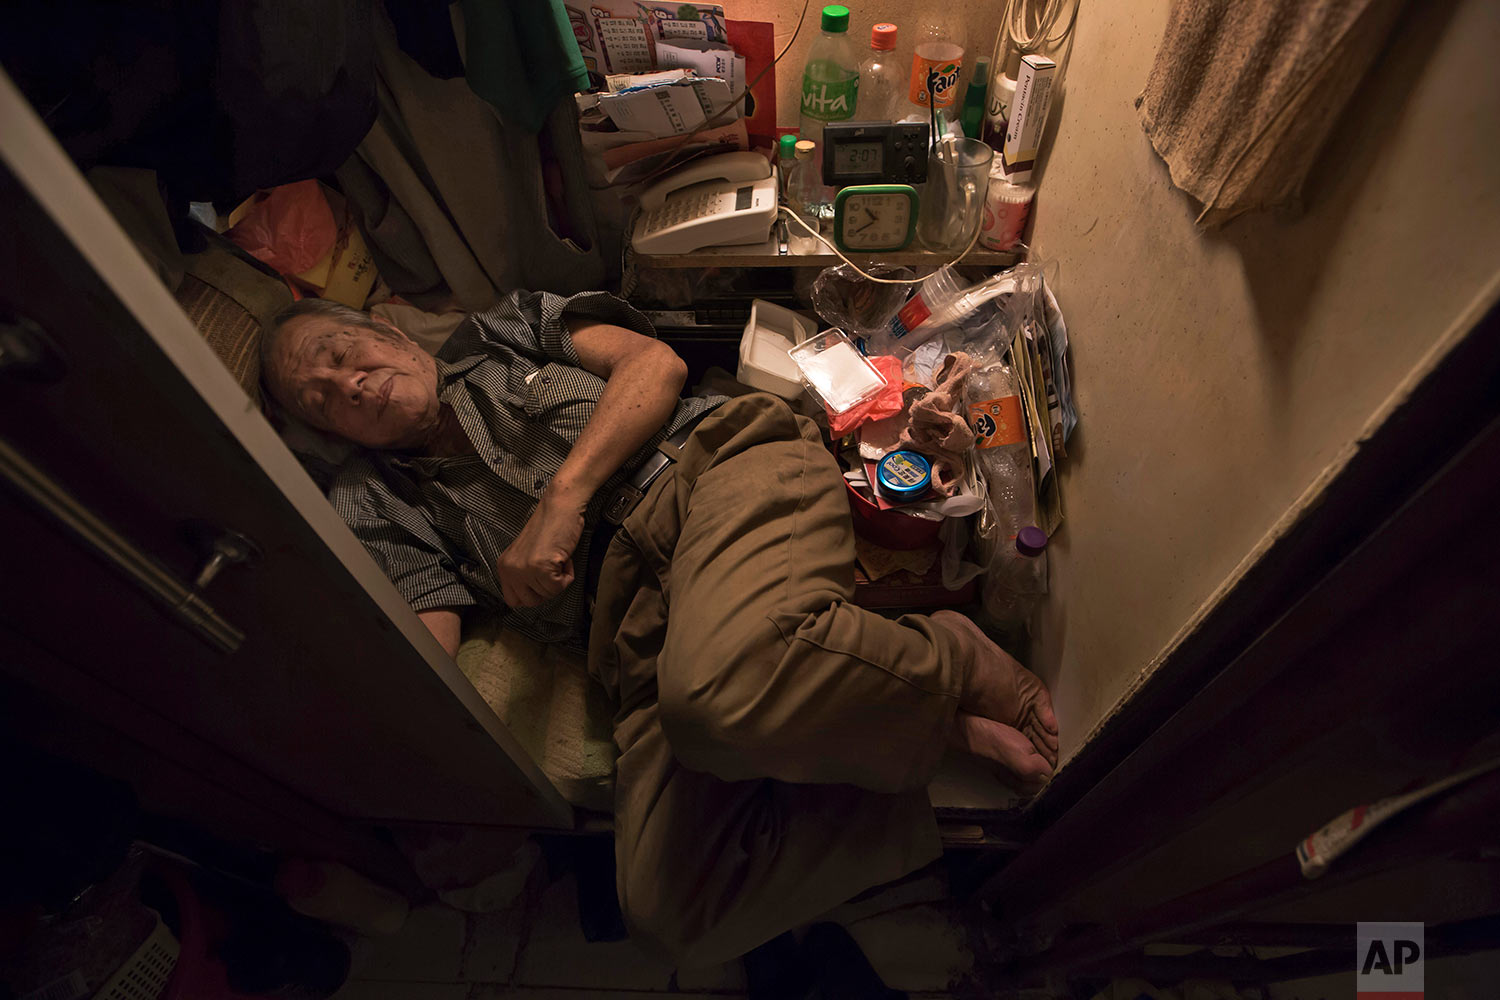 """In this Thursday, March 28, 2017 photo, Cheung Chi-fong, 80, sleeps in his tiny """"coffin home"""" where he cannot stretch out his legs in Hong Kong. In wealthy Hong Kong, there's a dark side to a housing boom, with hundreds of thousands of people forced to live in partitioned shoebox apartments, """"coffin homes"""" and other """"inadequate housing.(AP Photo/Kin Cheung)"""